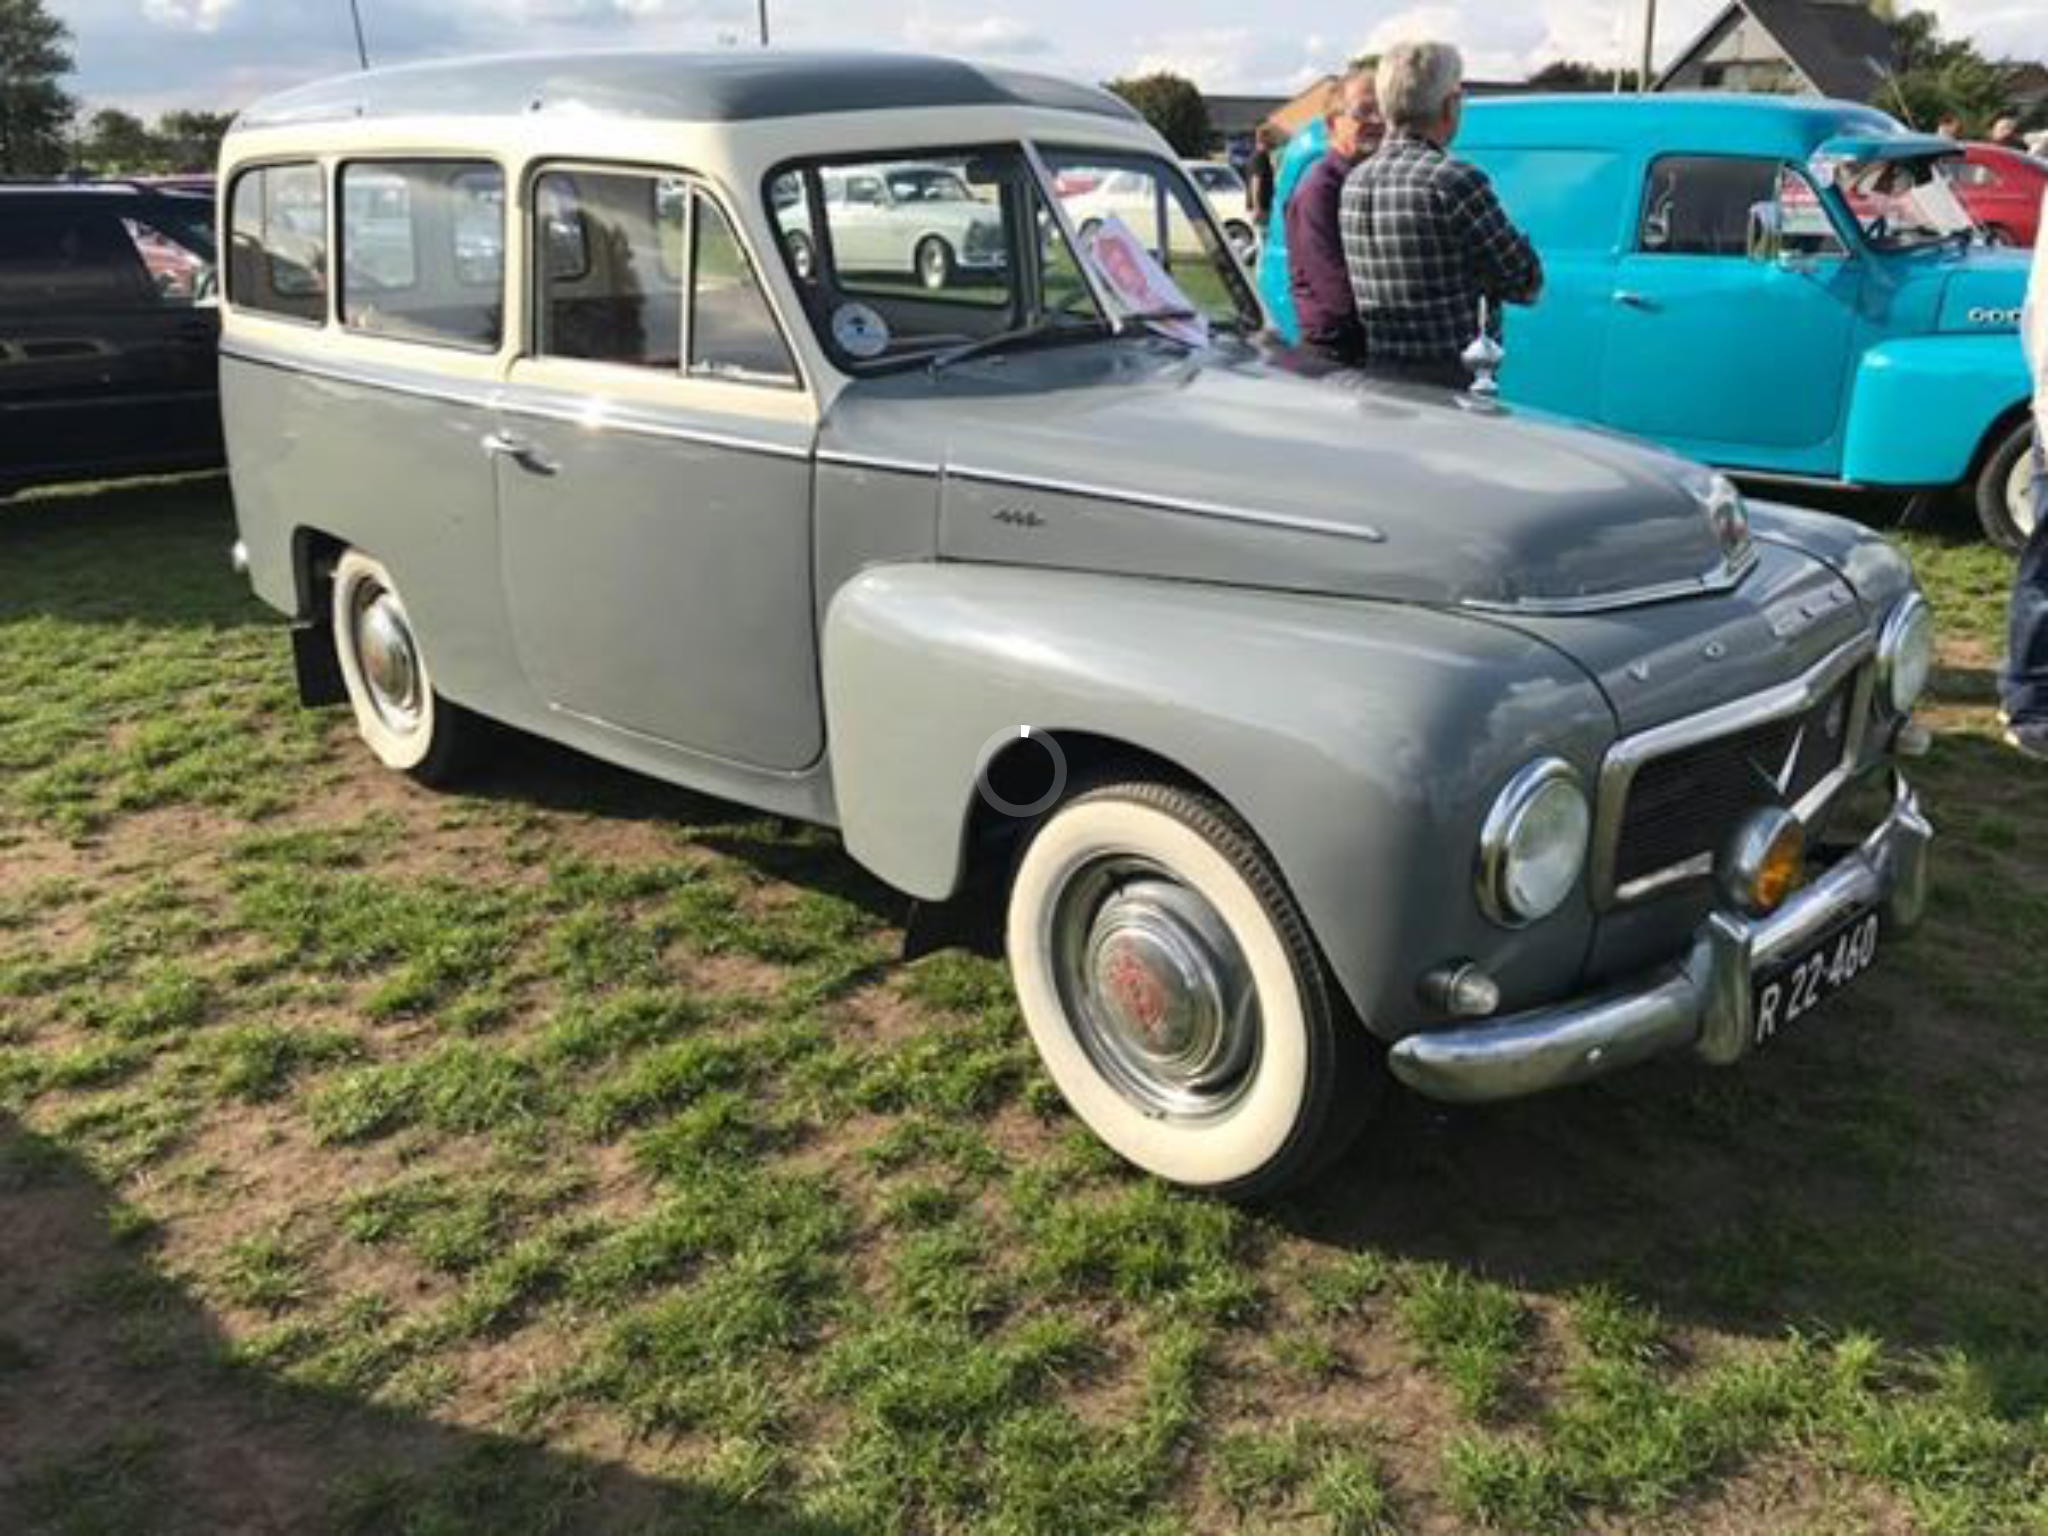 Pin By Robwilson On Stove Cook Volvo Antique Cars Photo